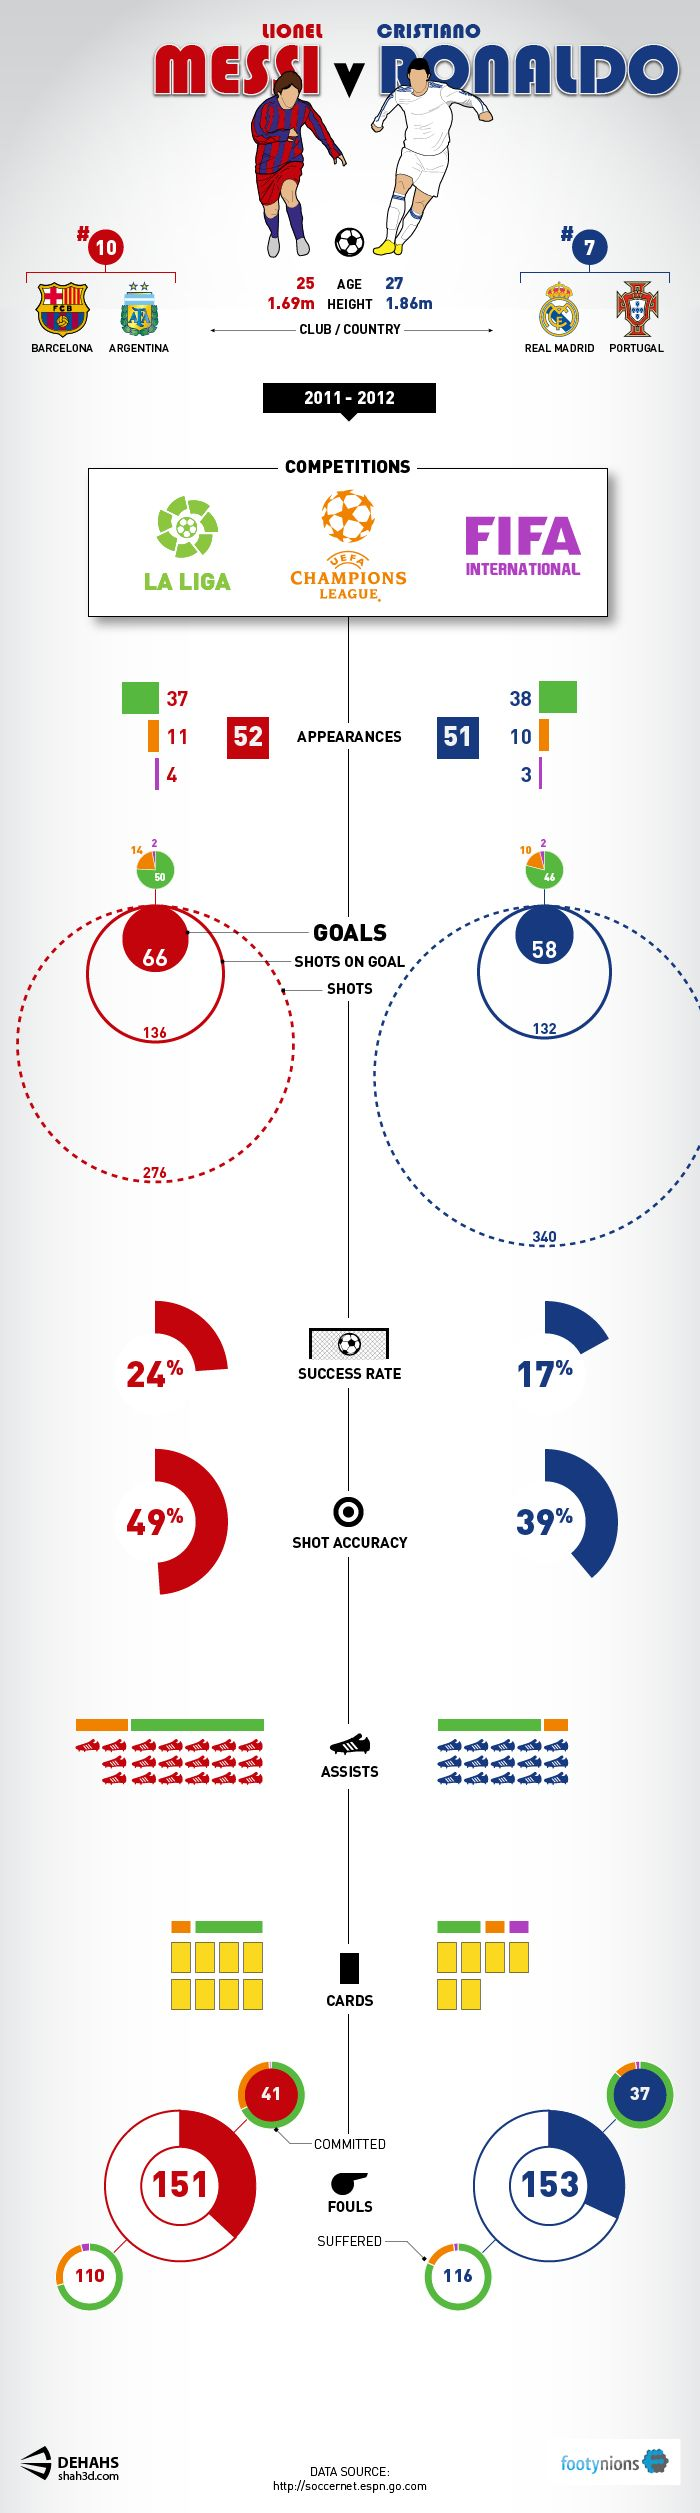 Who did better in the 2011-12 season: Messi or Ronaldo? This graphic provides the answer based purely on stats from La Liga, Champions League, and Int